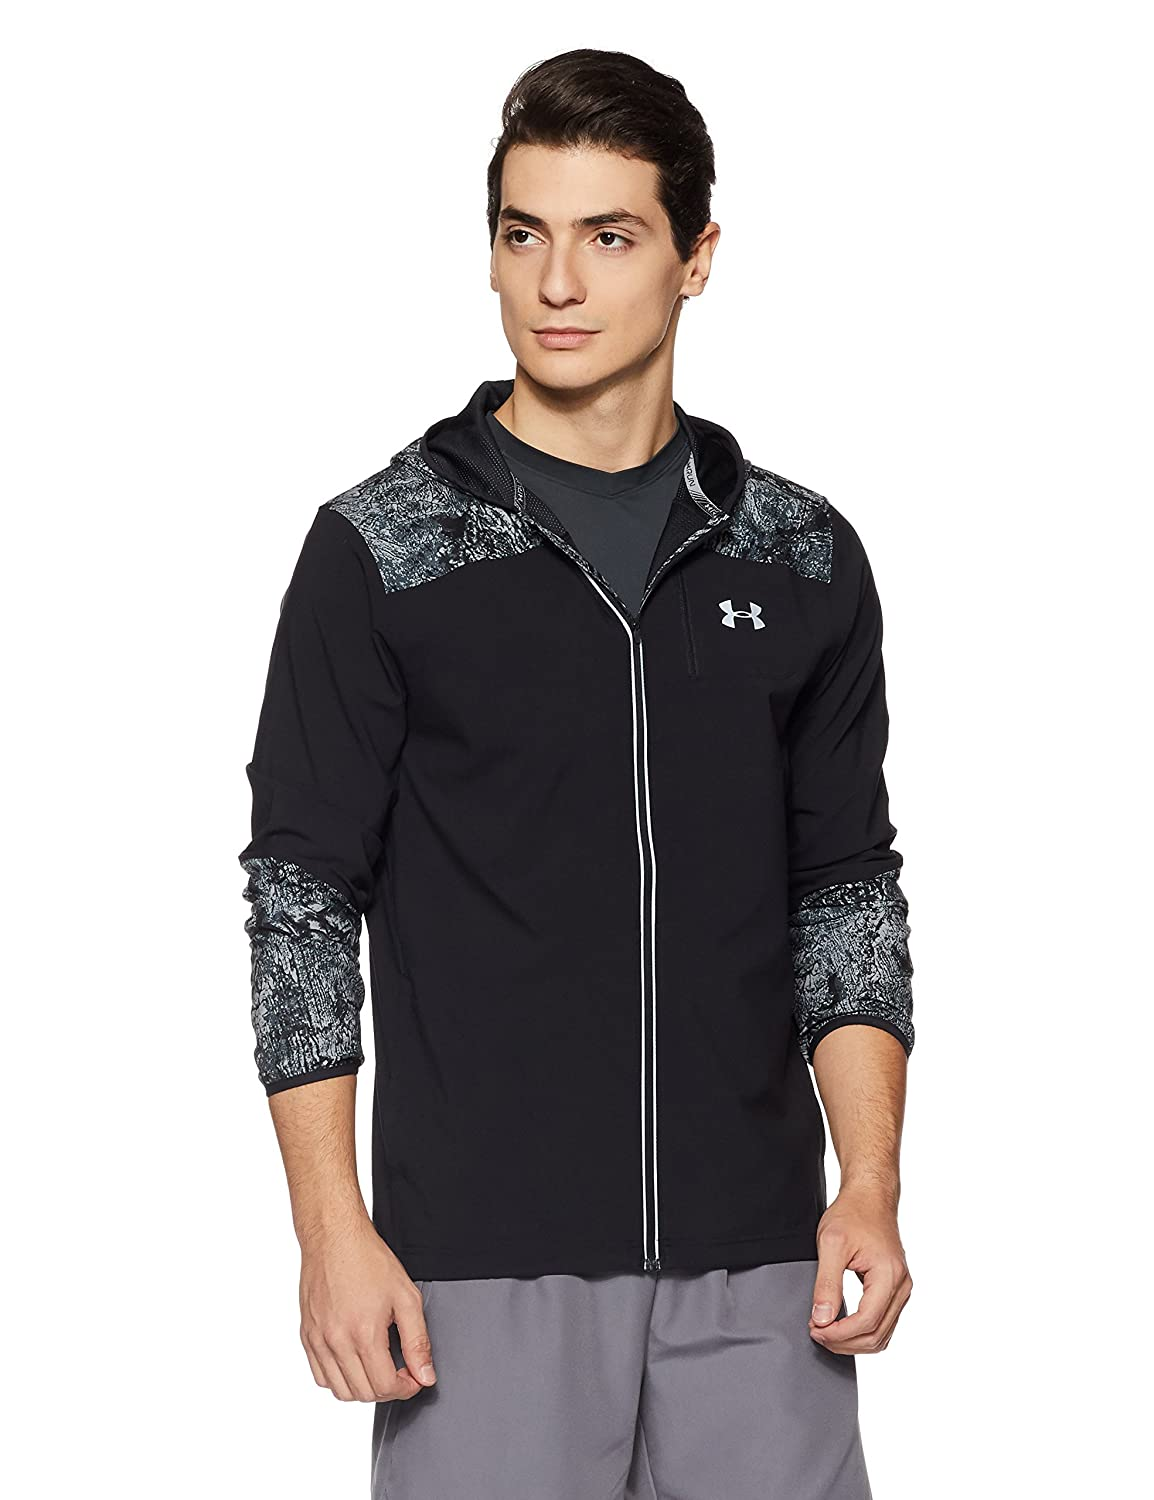 Under Armour Men's Storm Run Printed Jacket Under Armour Apparel 1289752